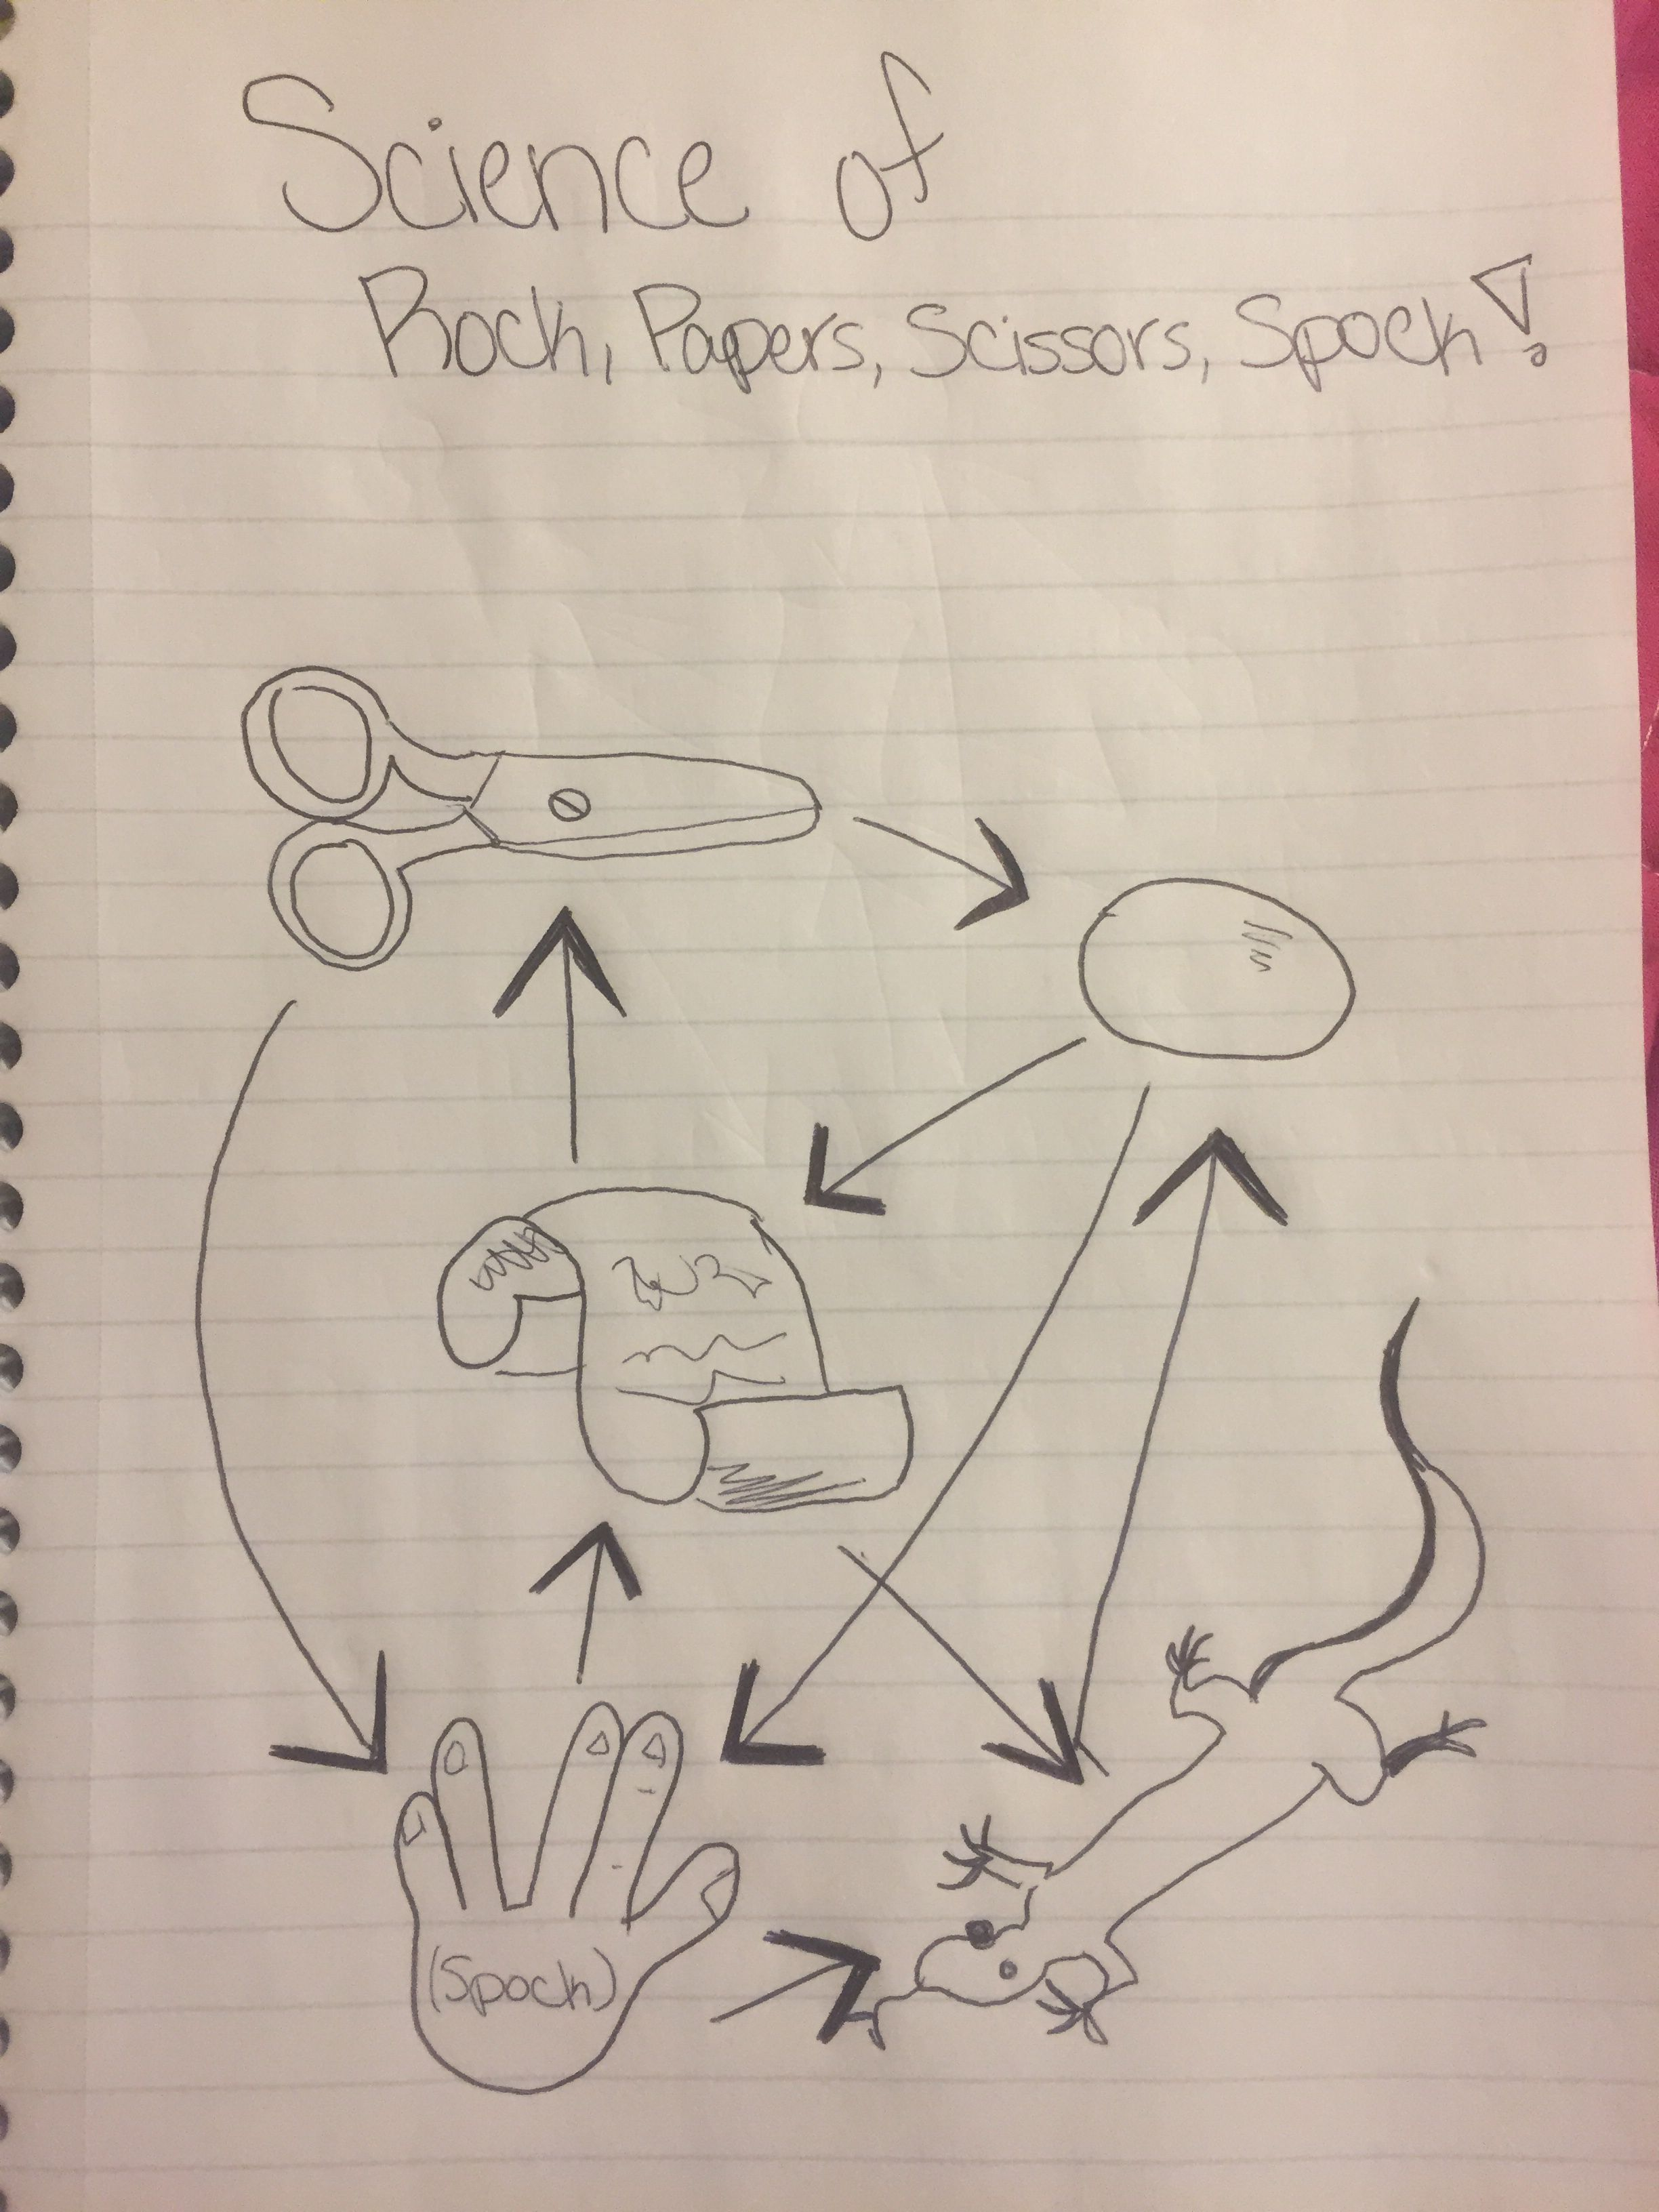 hight resolution of big bang theory rock paper scissors spock lizard in a science diagram